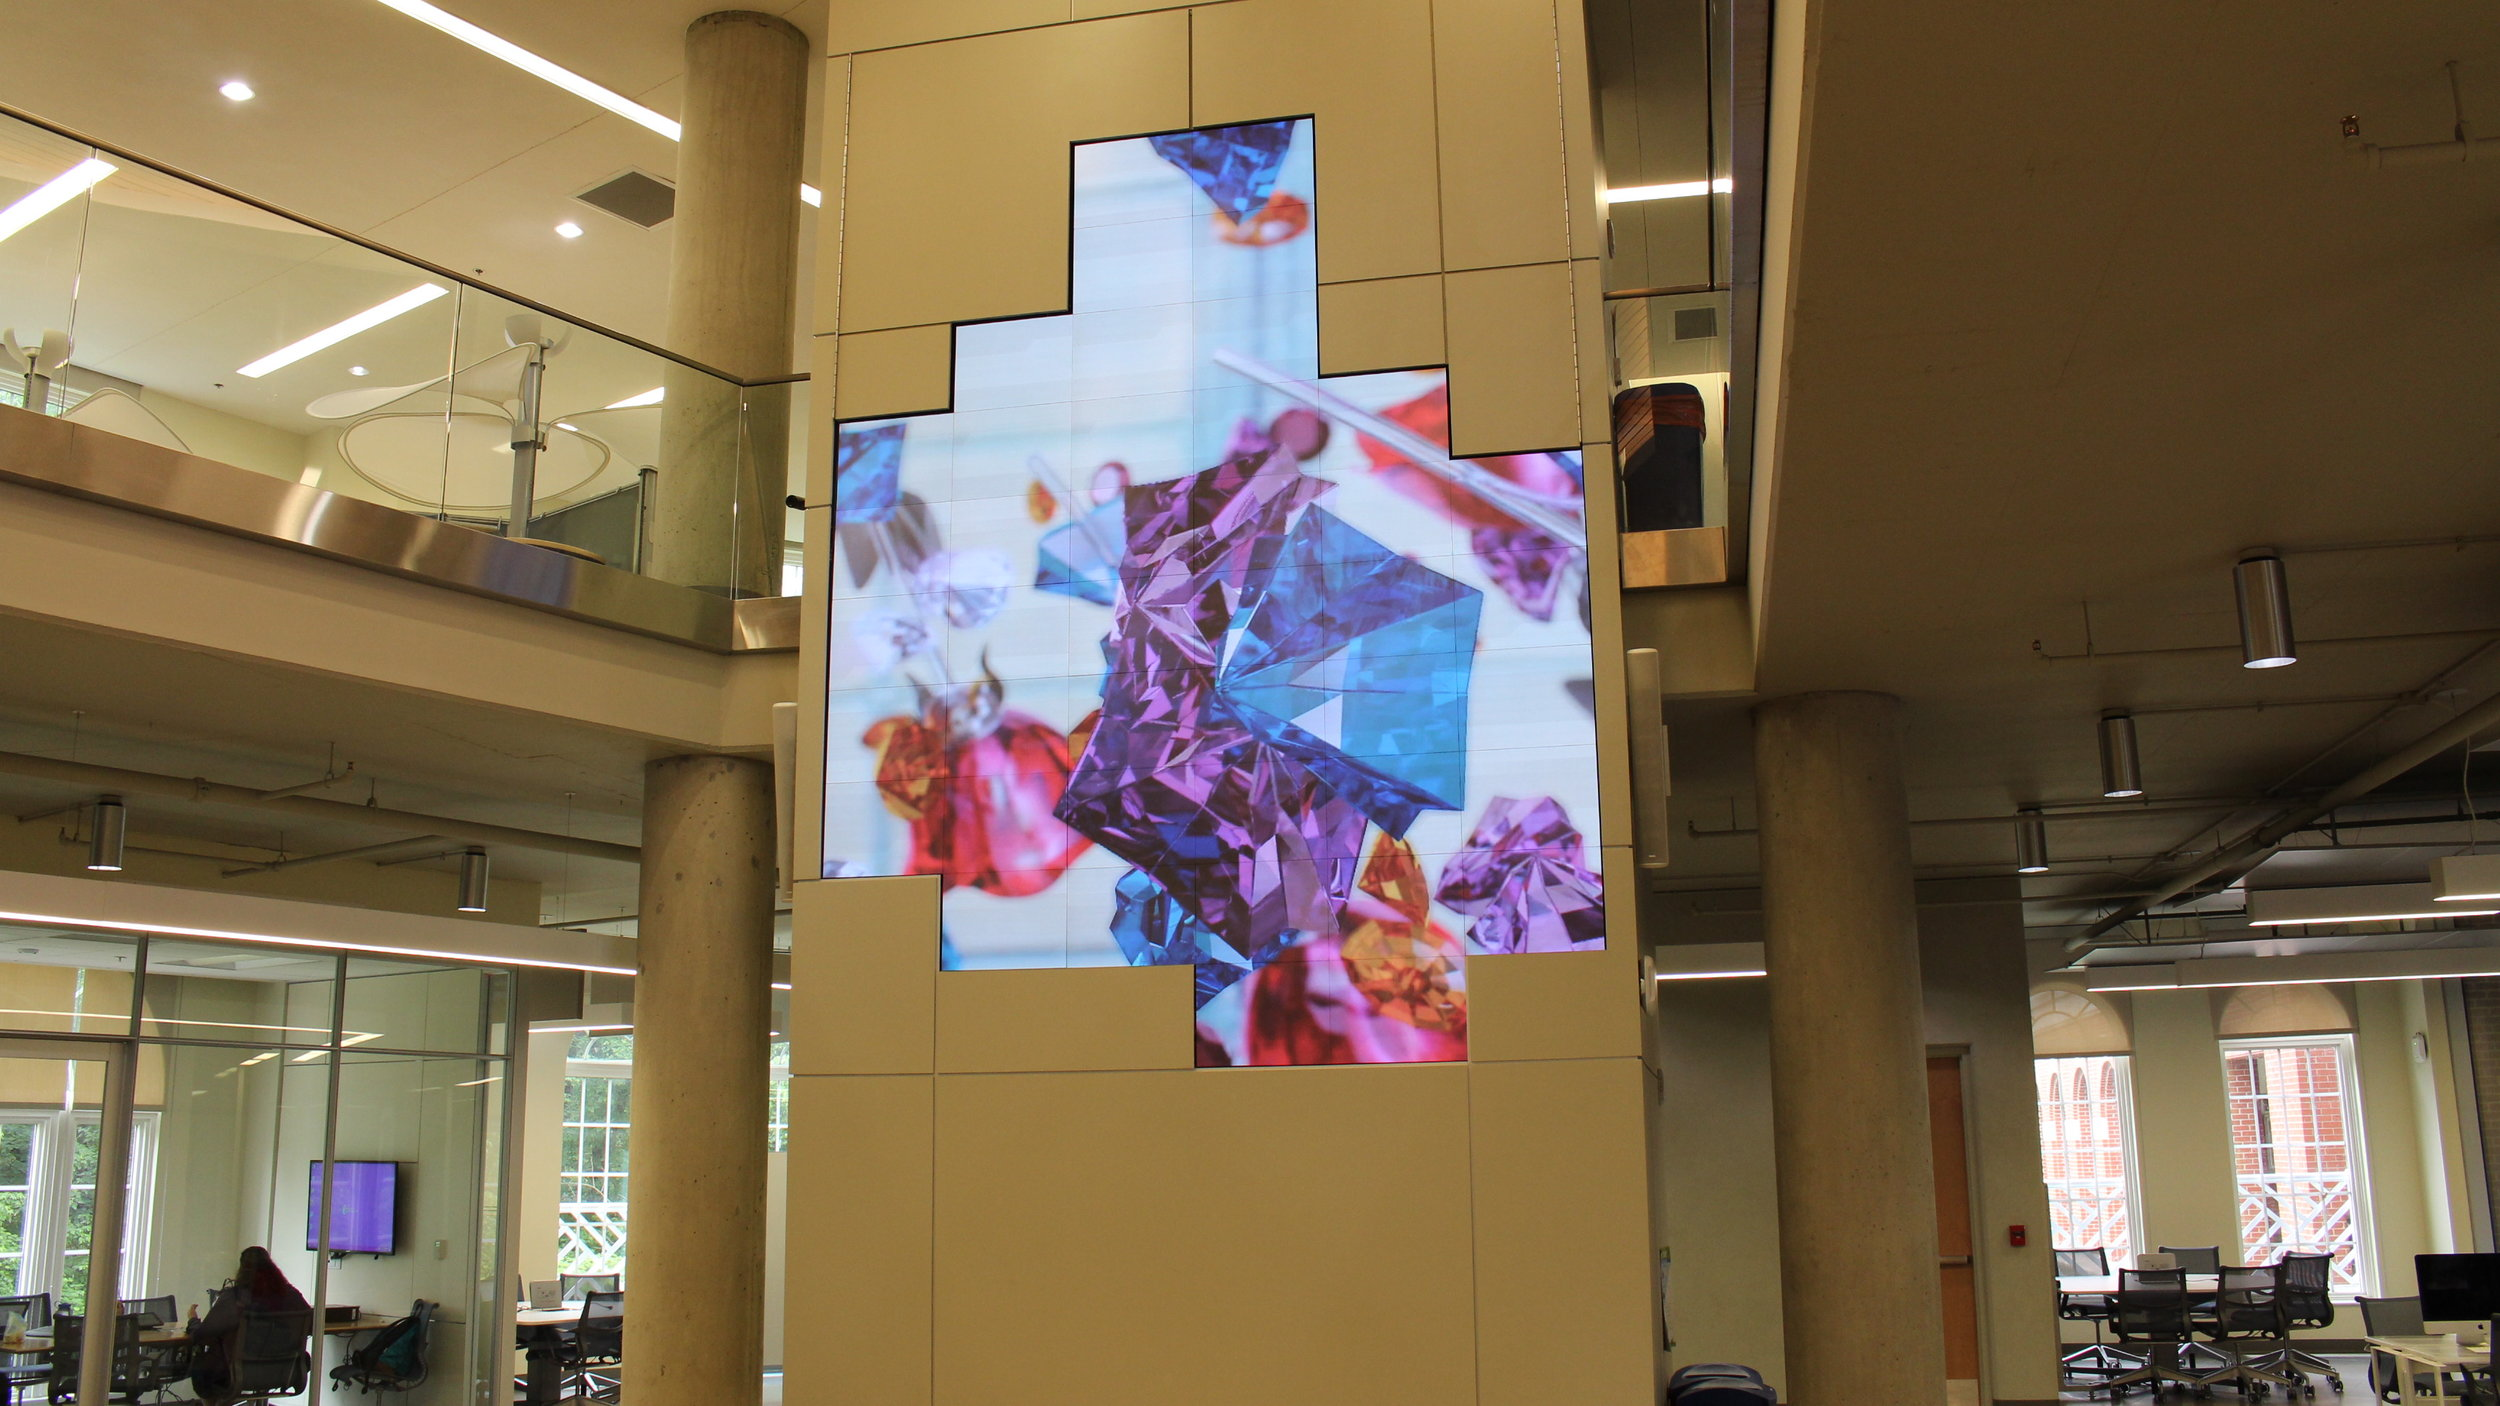 Crystals, Edition of 5, 2 APS, The University of Mary Washington, Video Wall, Fredericksburg, Virginia   Video Exhibition Featured, A Moving Exhibition Space,